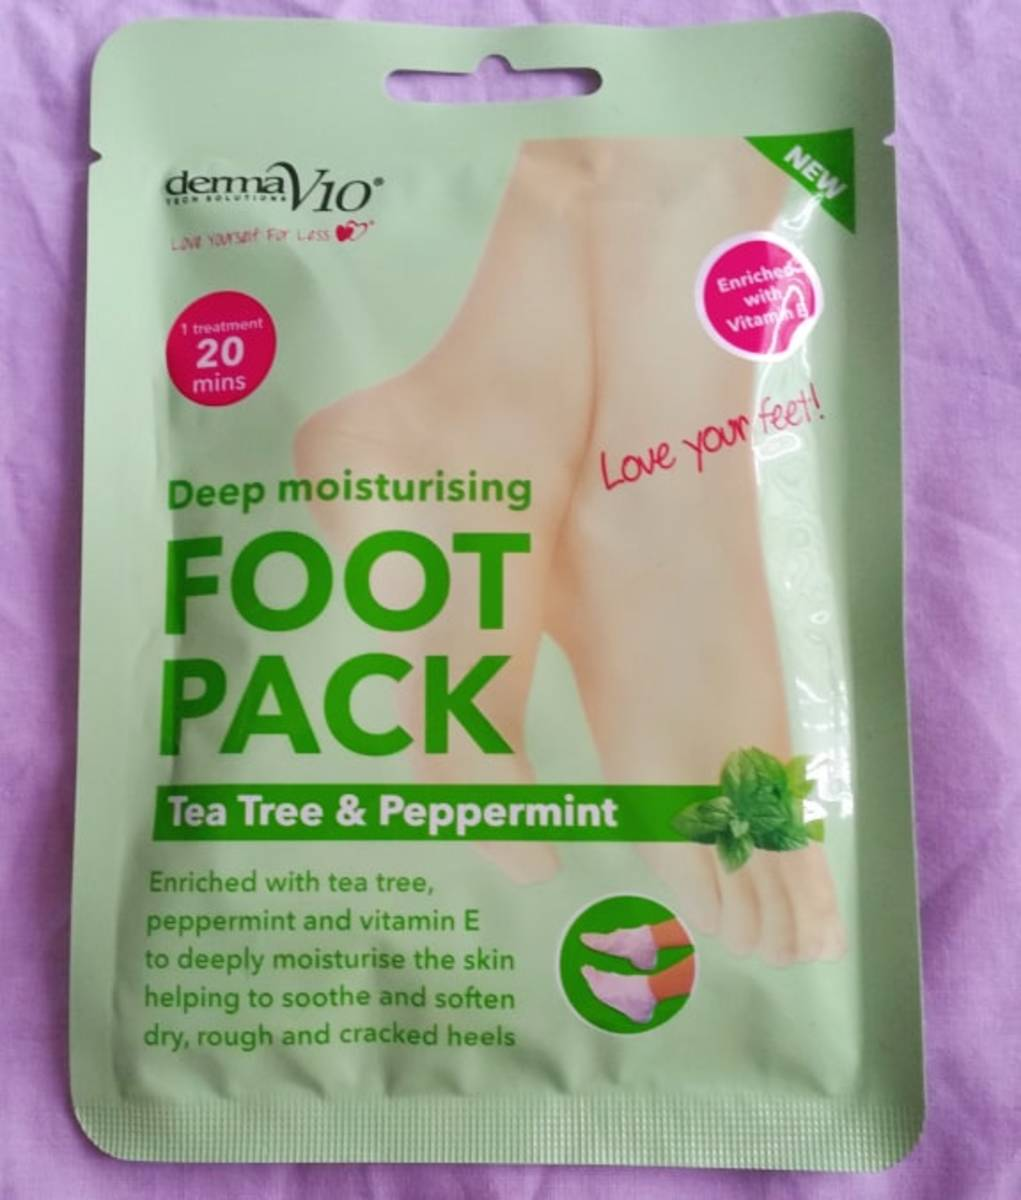 The outer packaging of the Derma V10 Tea Tree and Peppermint Deep Moisturising Foot Pack.